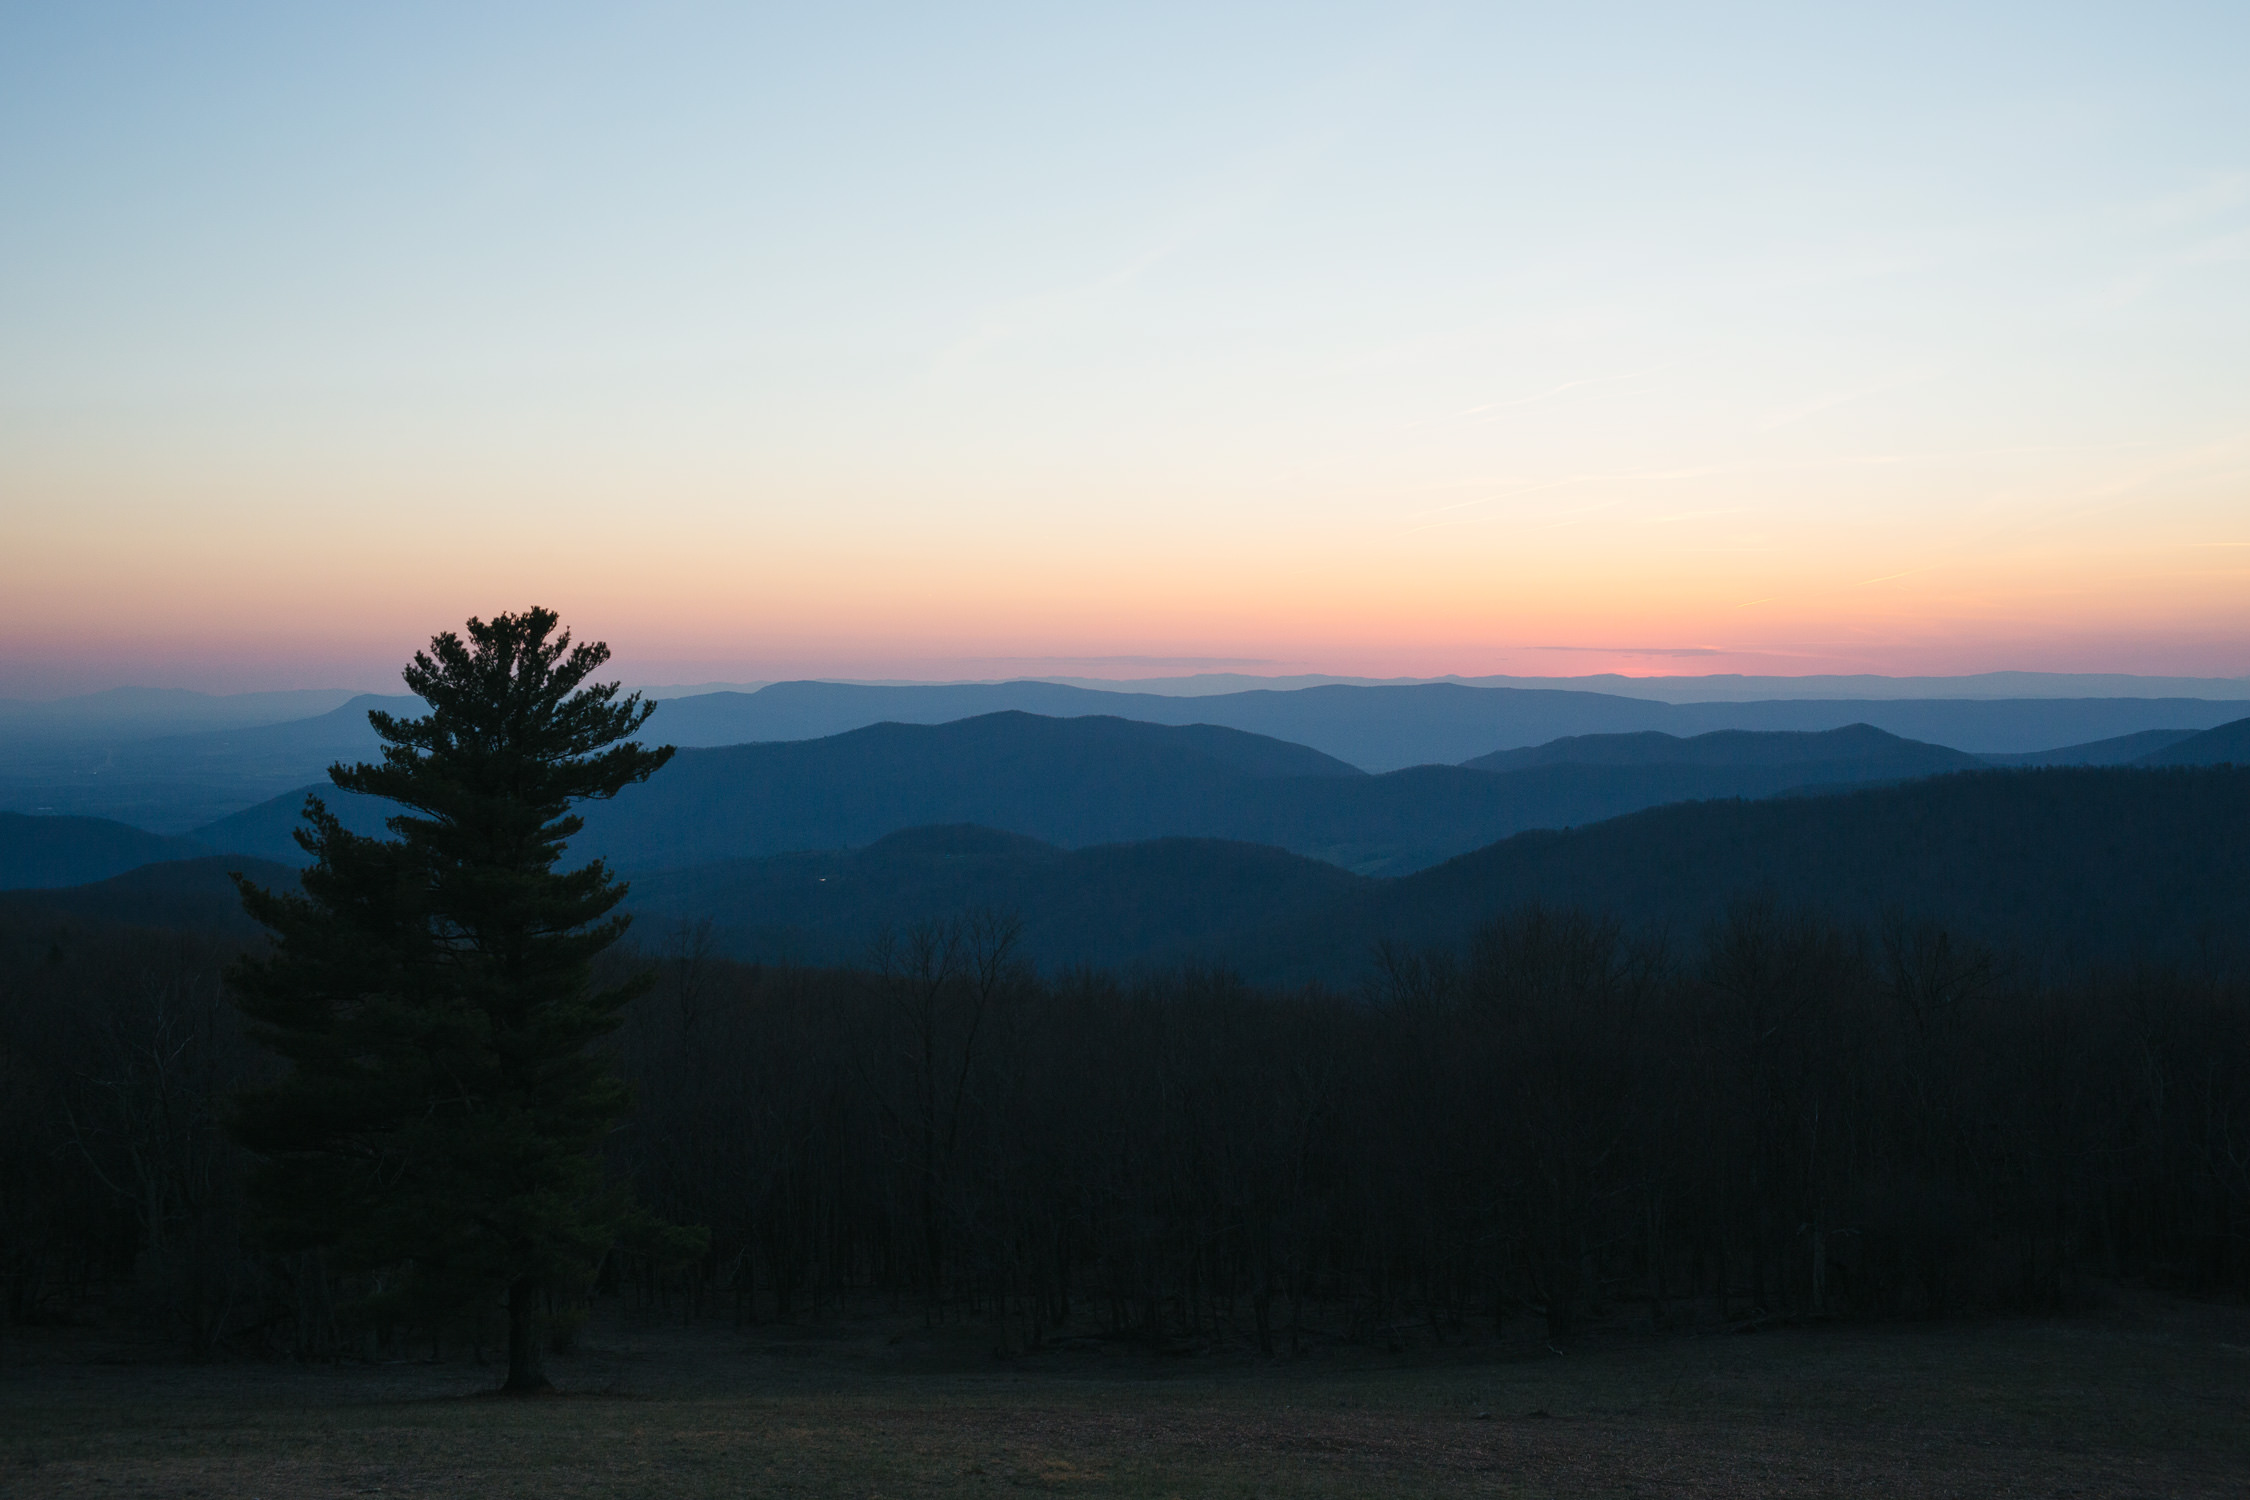 blue ridge mountain landscape at dusk for washington dc commercial photography